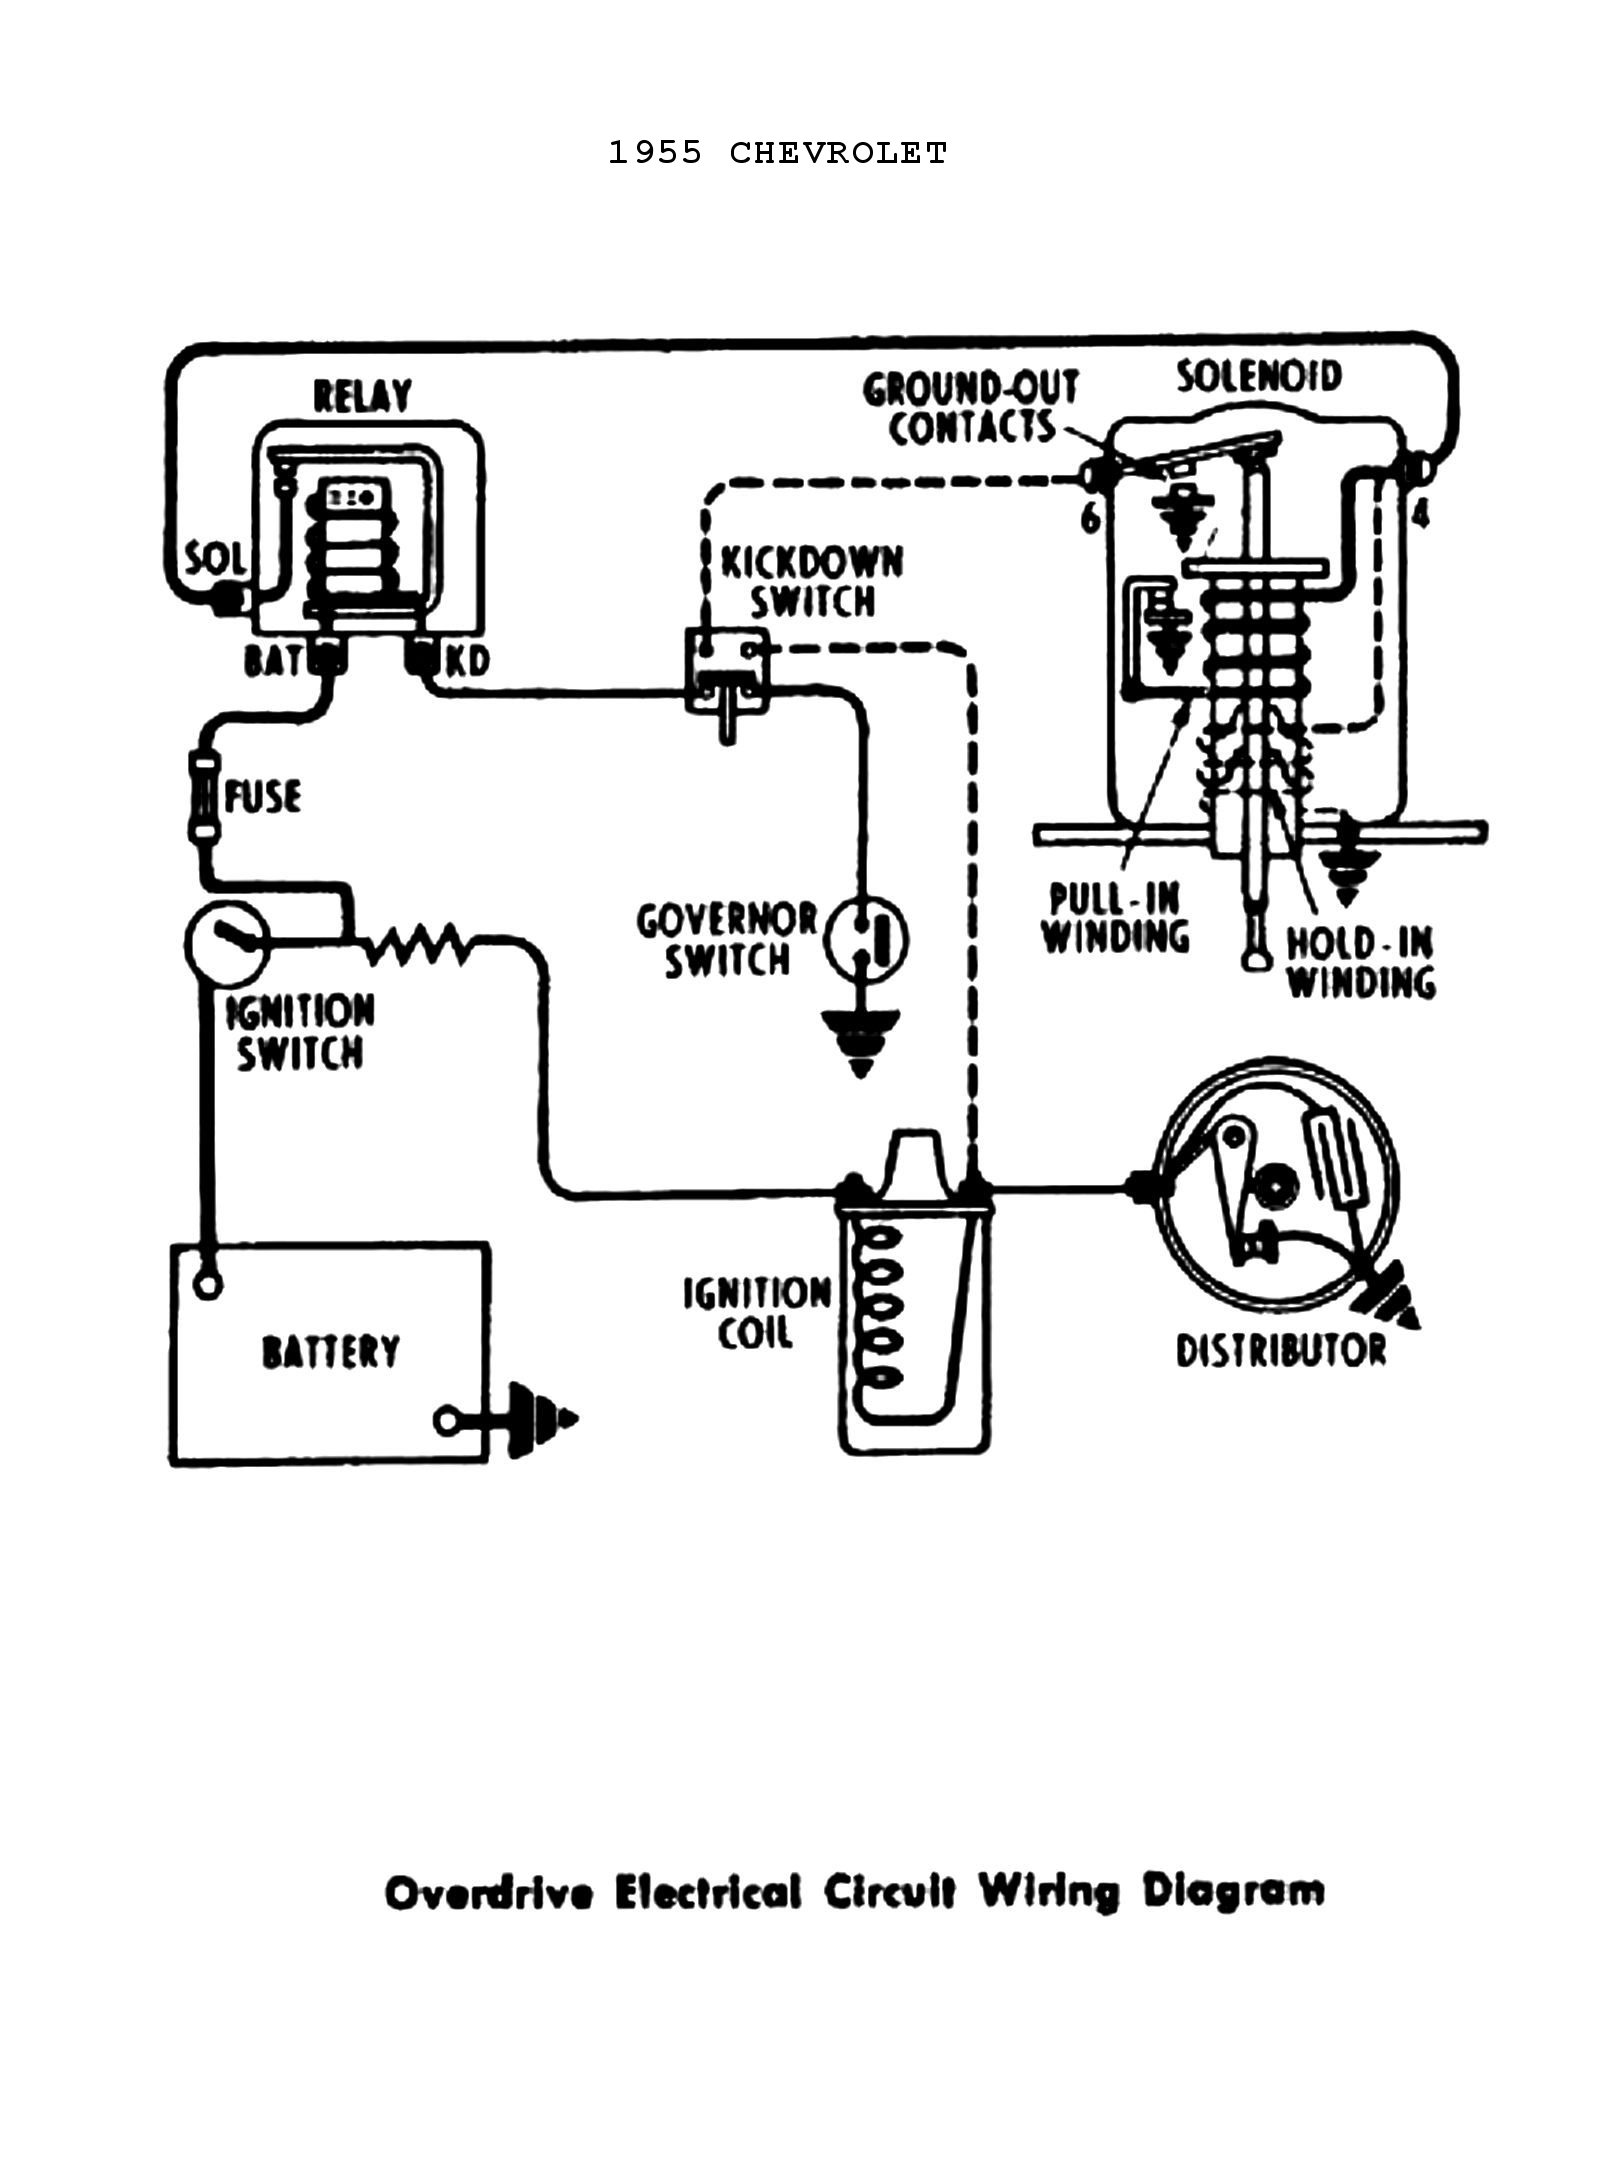 1955 chevy overdrive wiring diagram